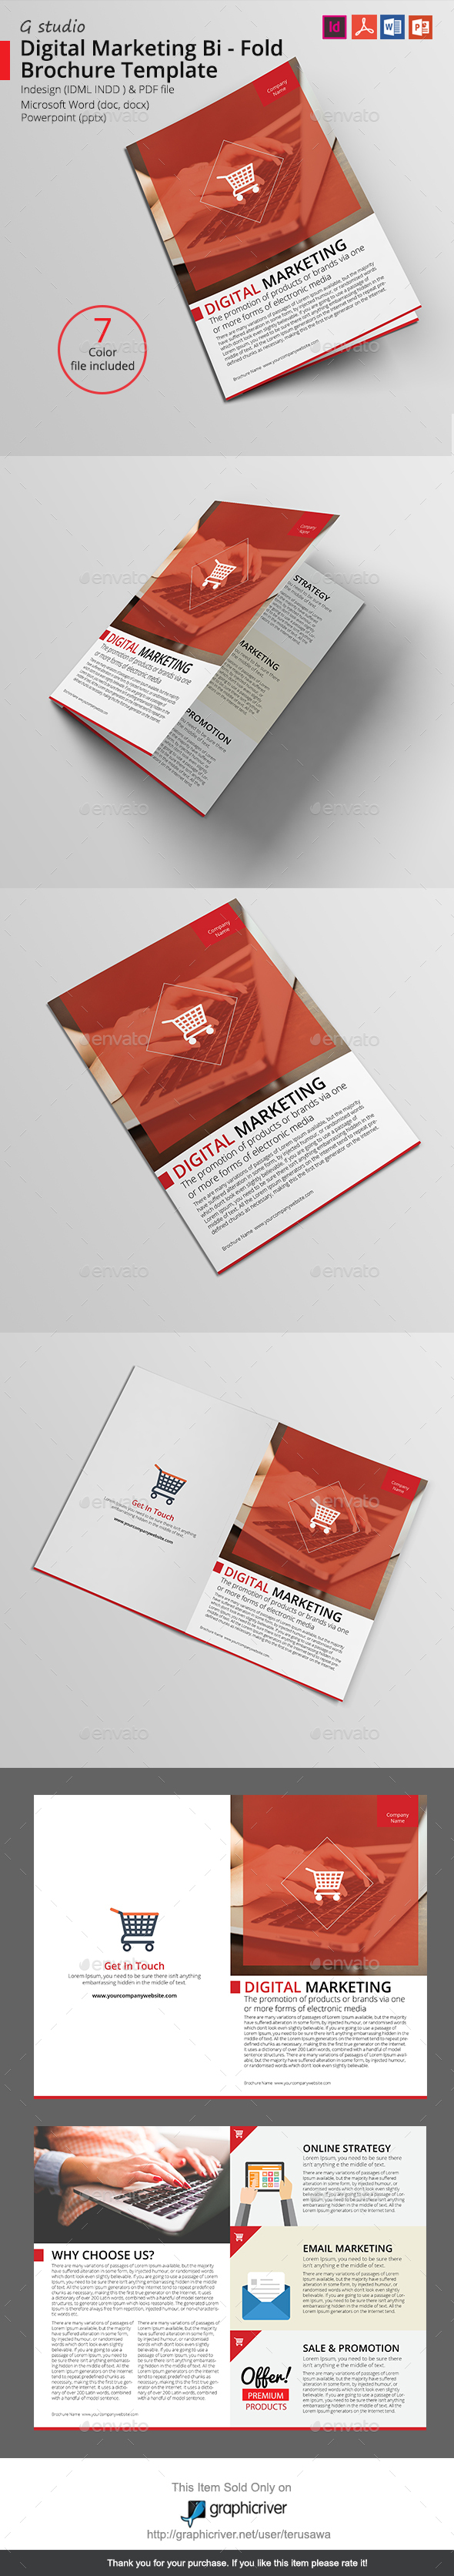 Digital Marketing Bi - Fold Brochure Template - Corporate Brochures